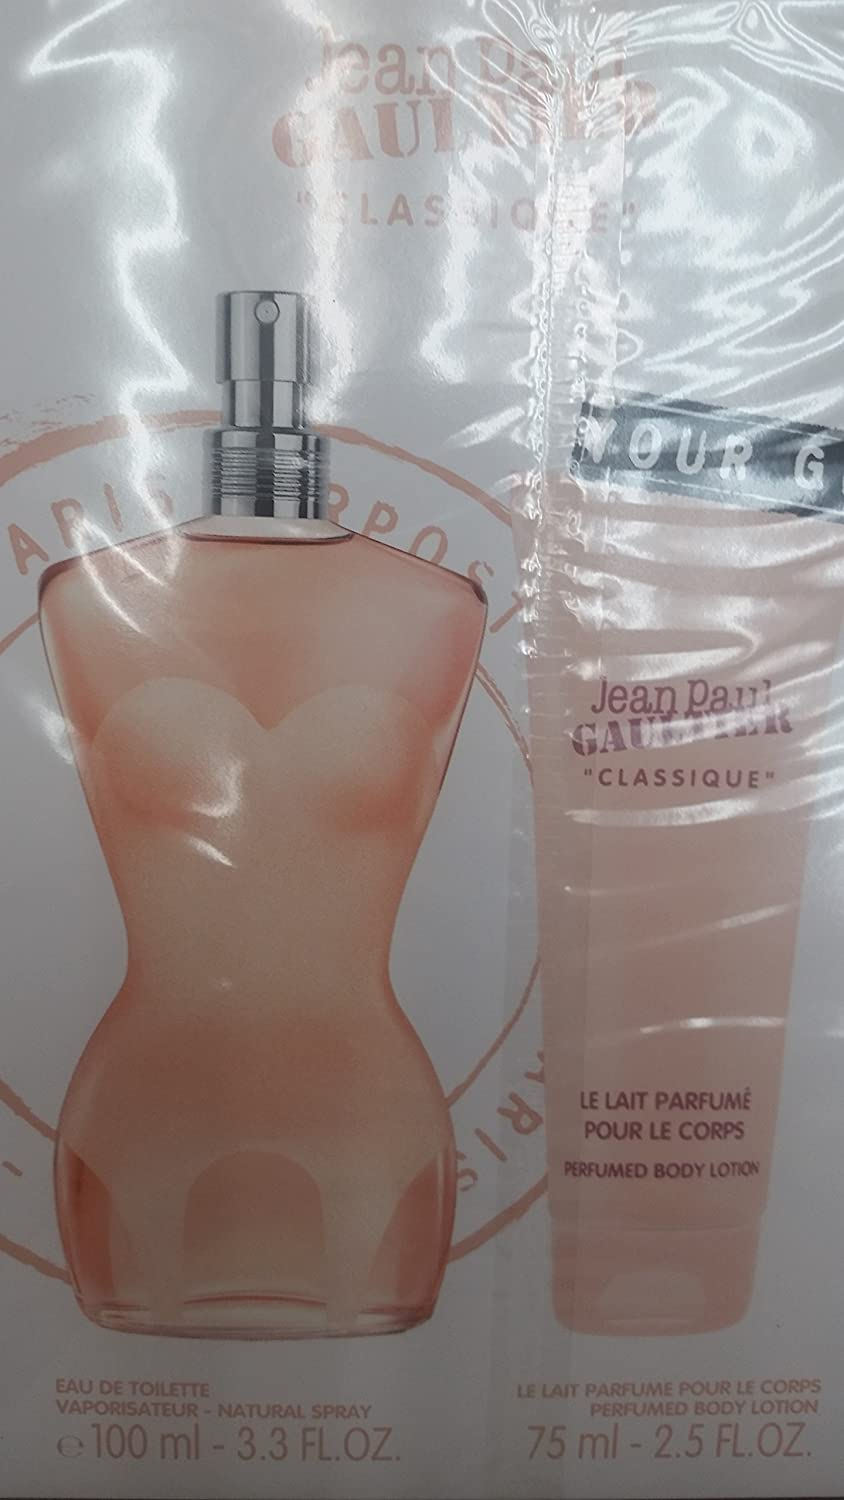 Jean Paul Gaultier Classique – Estuche con eau de toilette, 100 ml + loción corporal, 75 ml: Amazon.es: Belleza